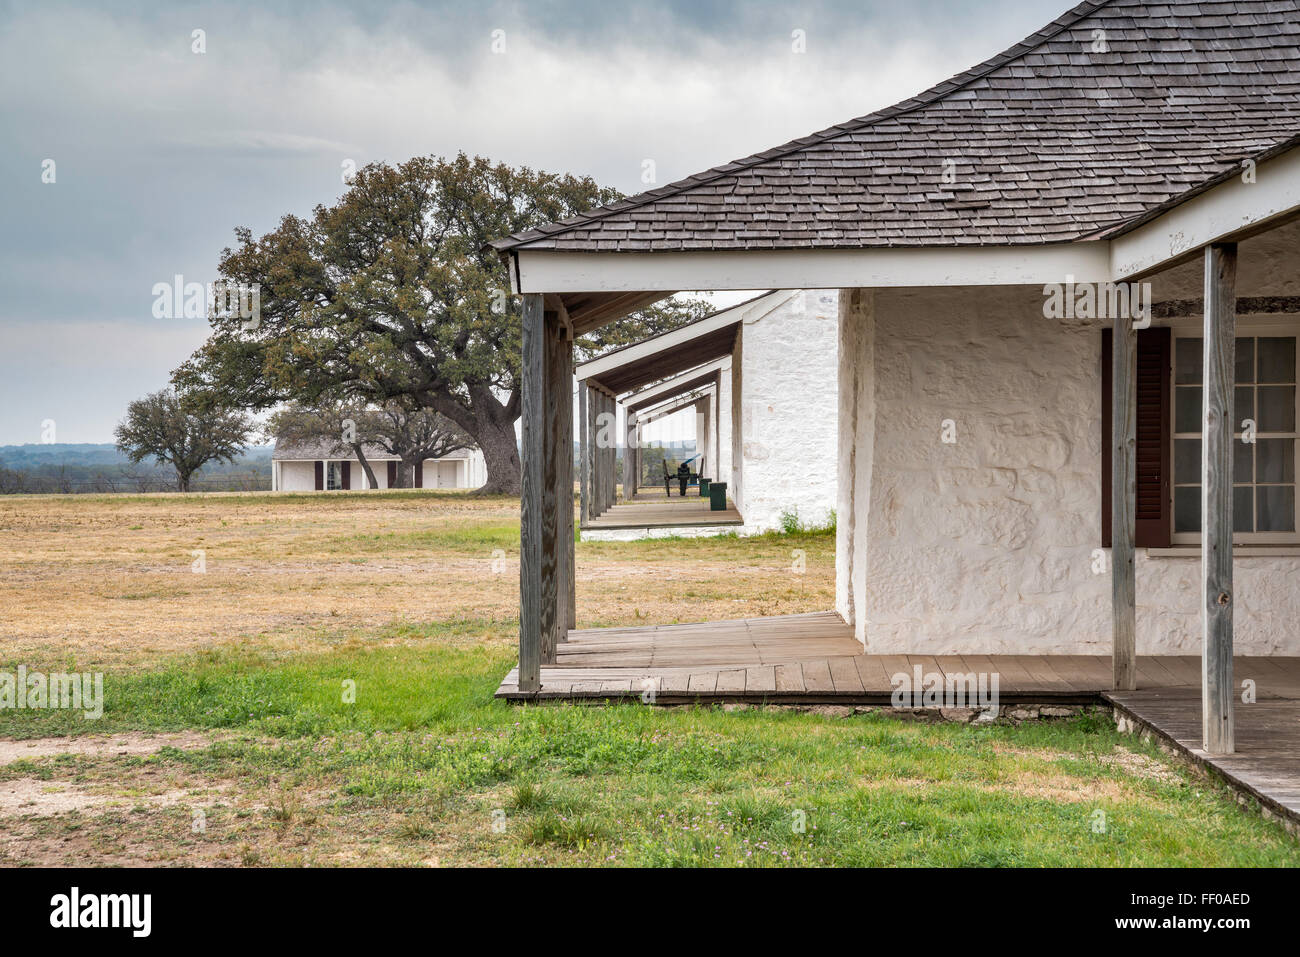 Lieutenants Row reconstructed buildings at Fort McKavett State Historic Site in Fort McKavett, Texas, USA - Stock Image